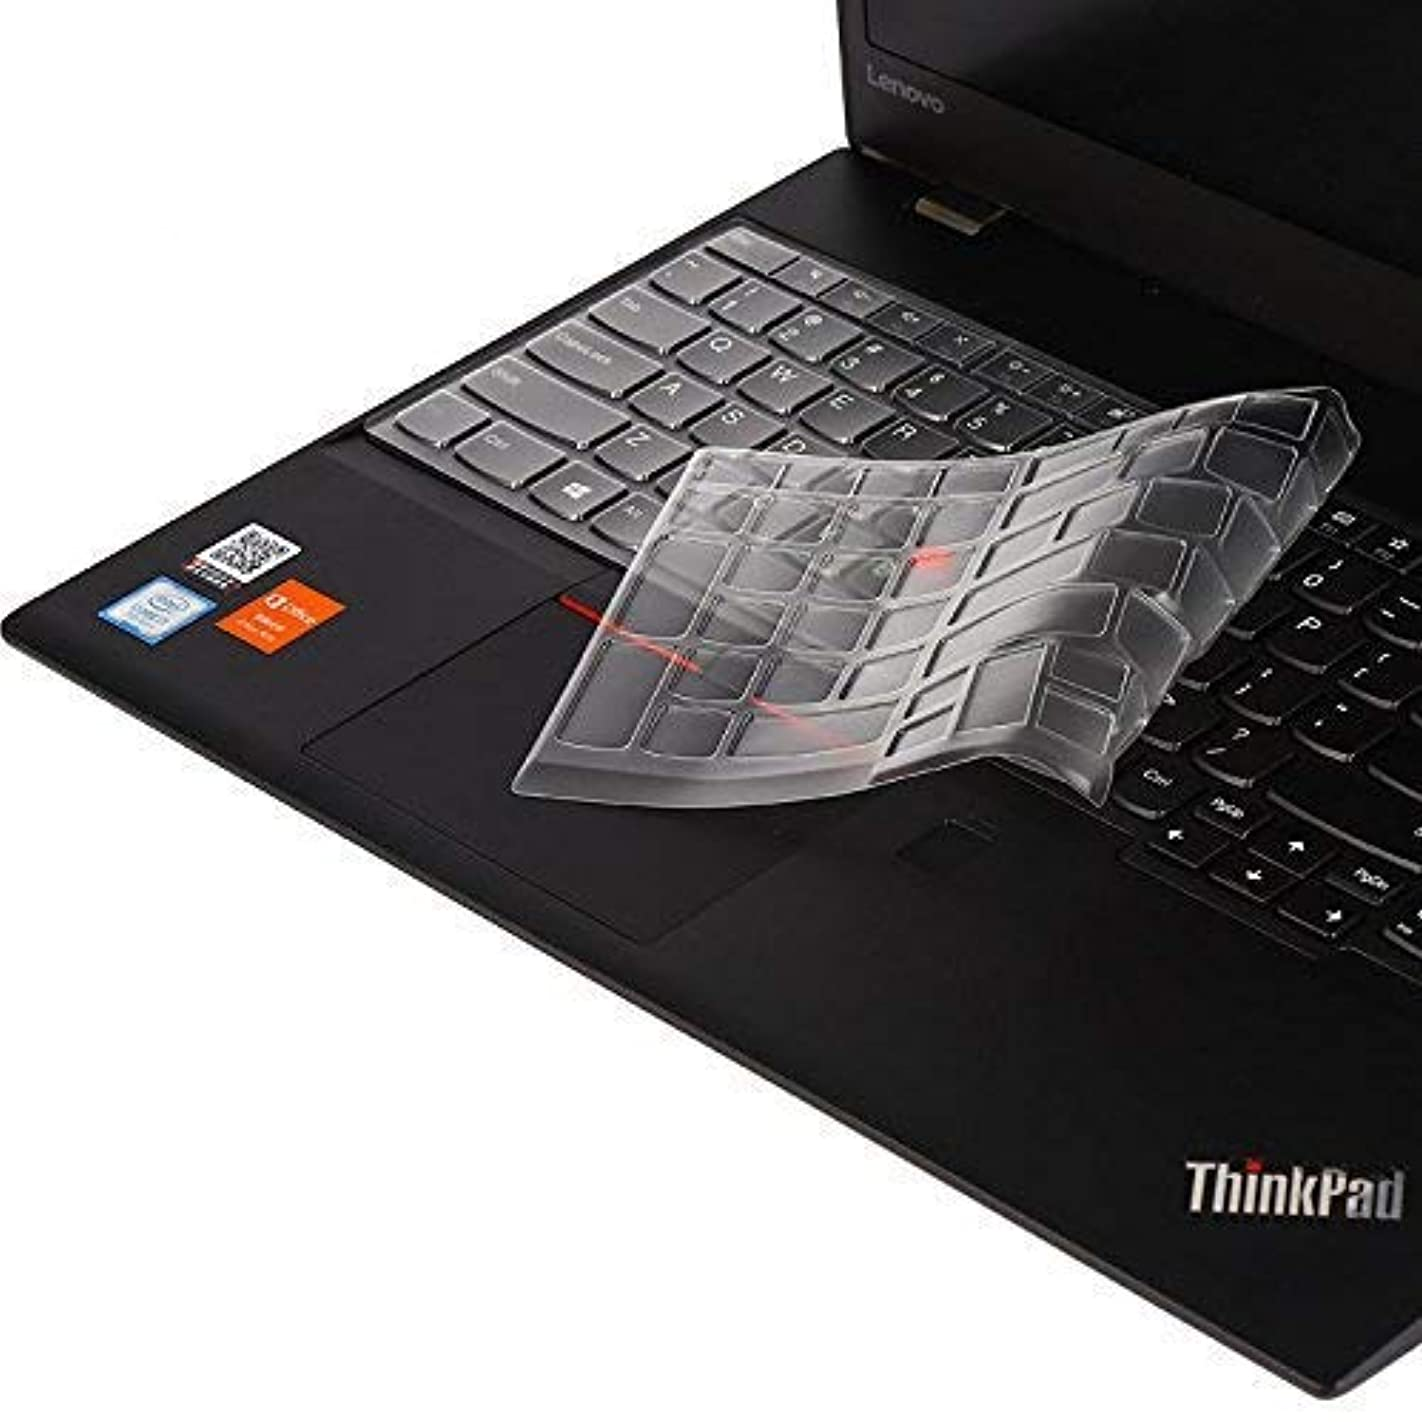 Ultra Thin Soft-Touch Keyboard Cover Compatible ThinkPad P51S P52 P52S T570 T580 T590 E580 E585 E590 Laptop - Clear r25141787502